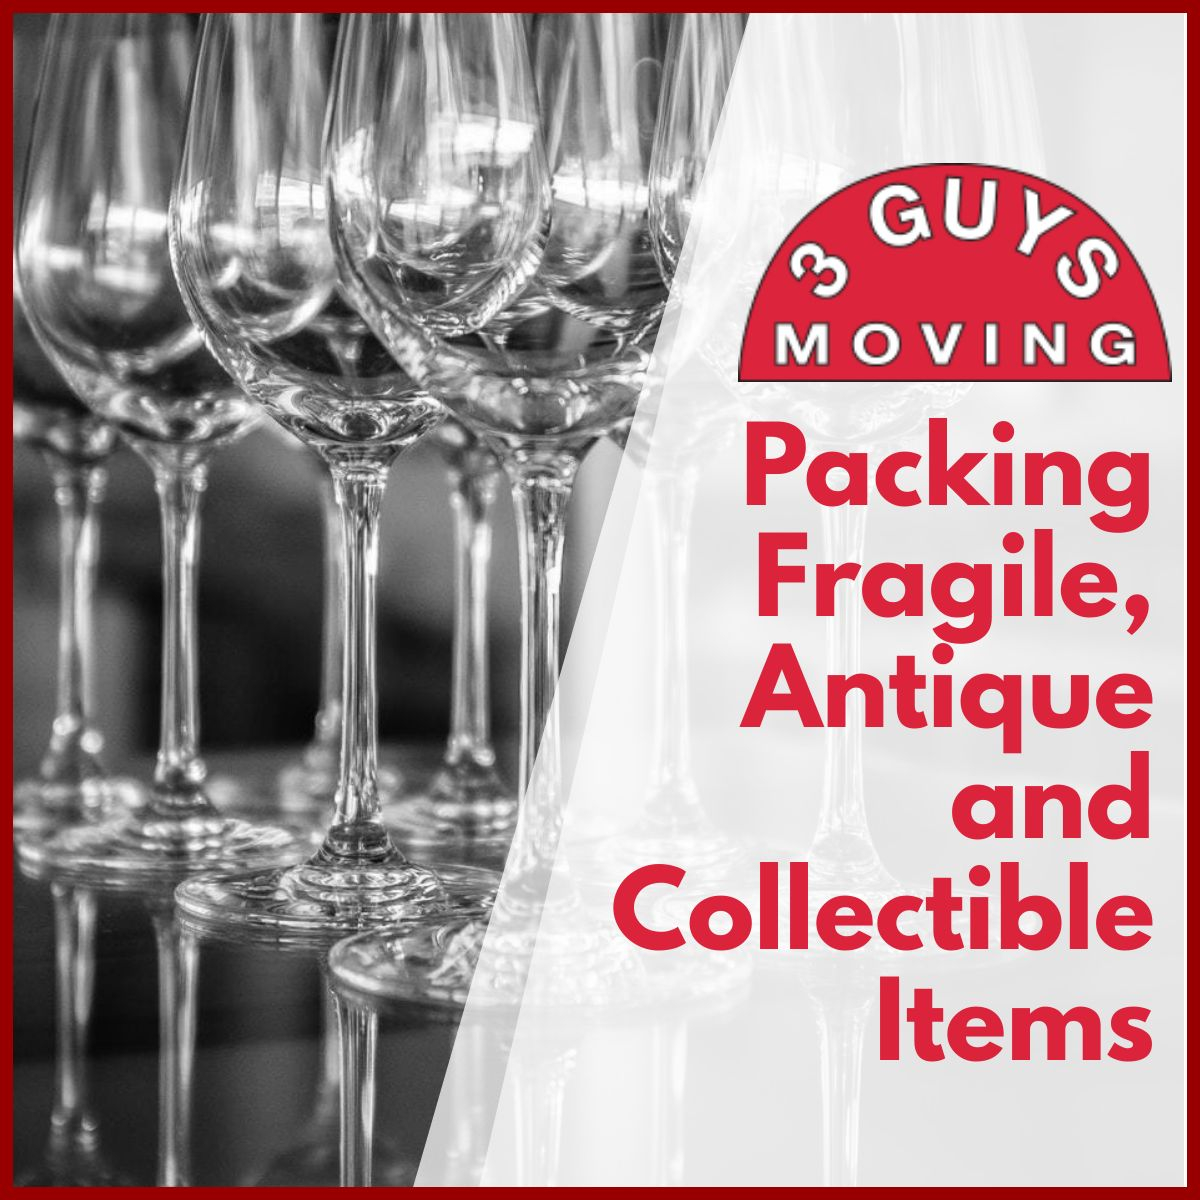 Packing Fragile - Packing Fragile, Antique and Collectible Items